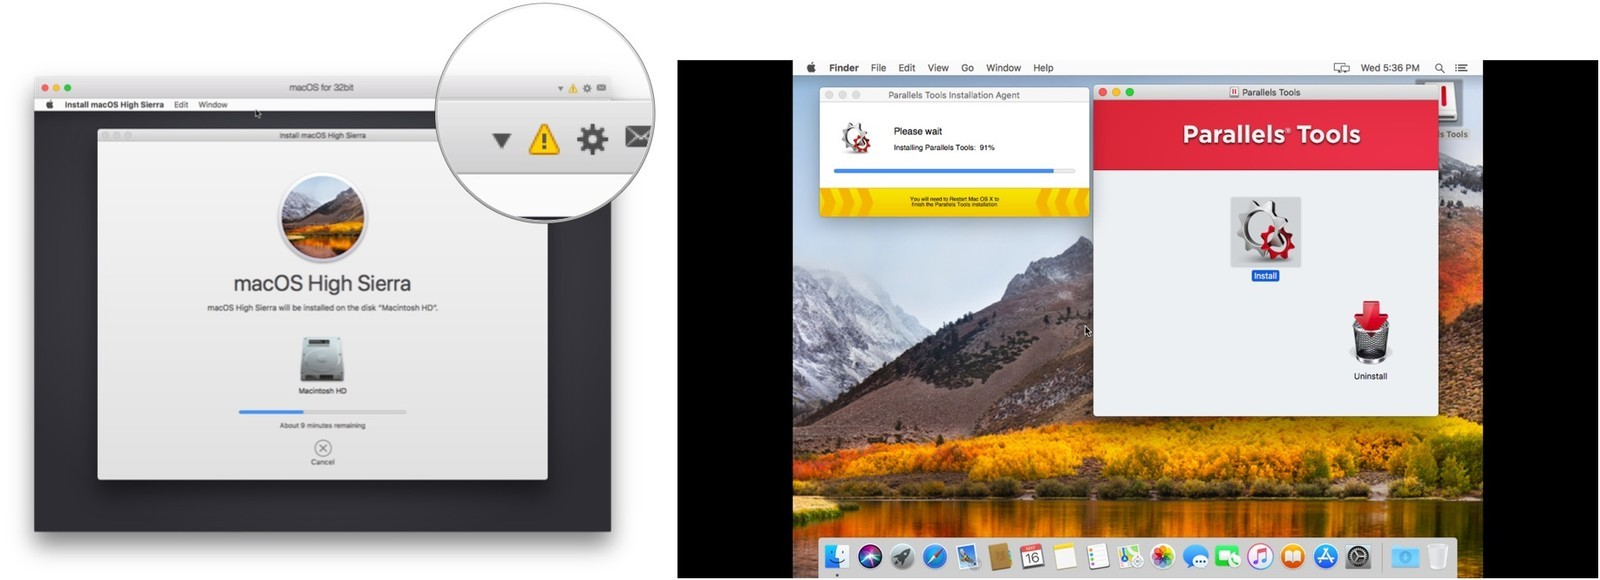 How to install macOS on a VM to run your 32 bit apps | iMore